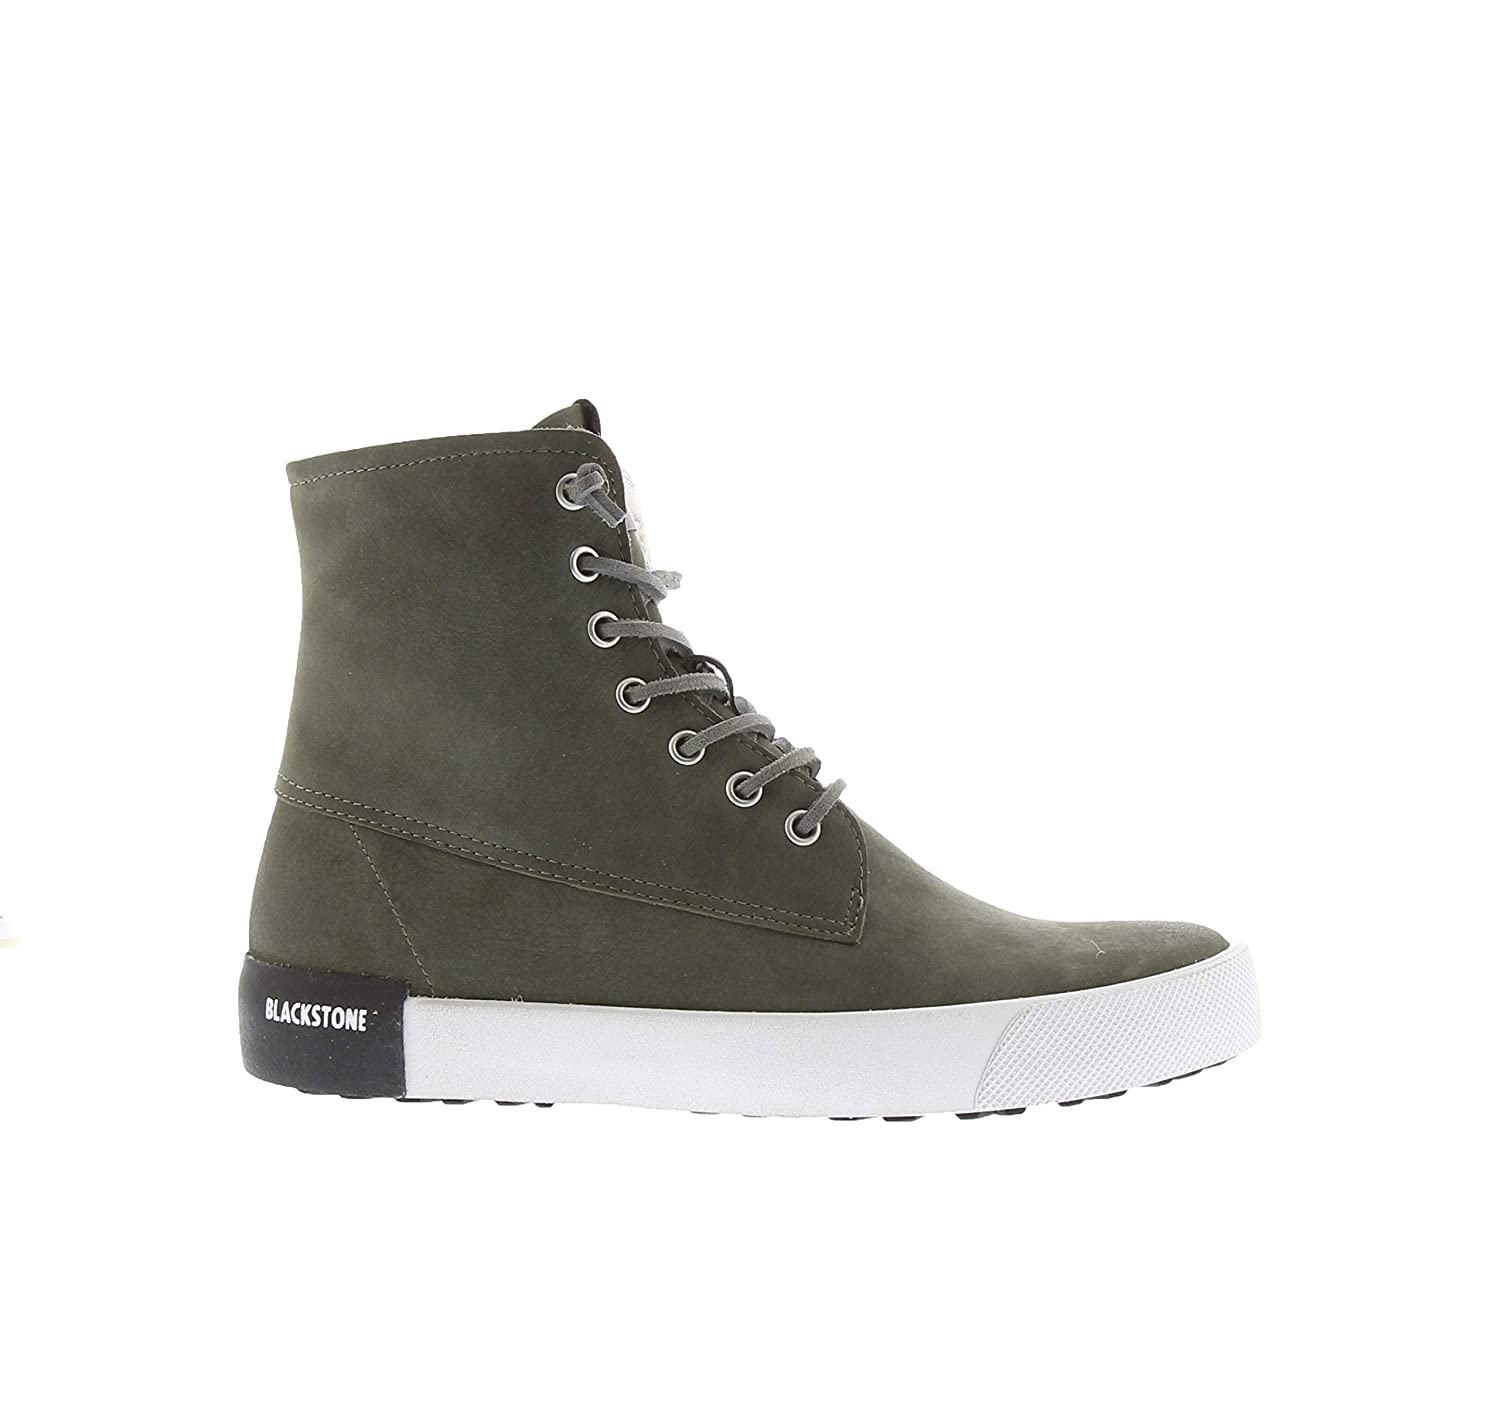 Green (Dark Green) Blackstone Women's Ql41 Hi-Top Trainers